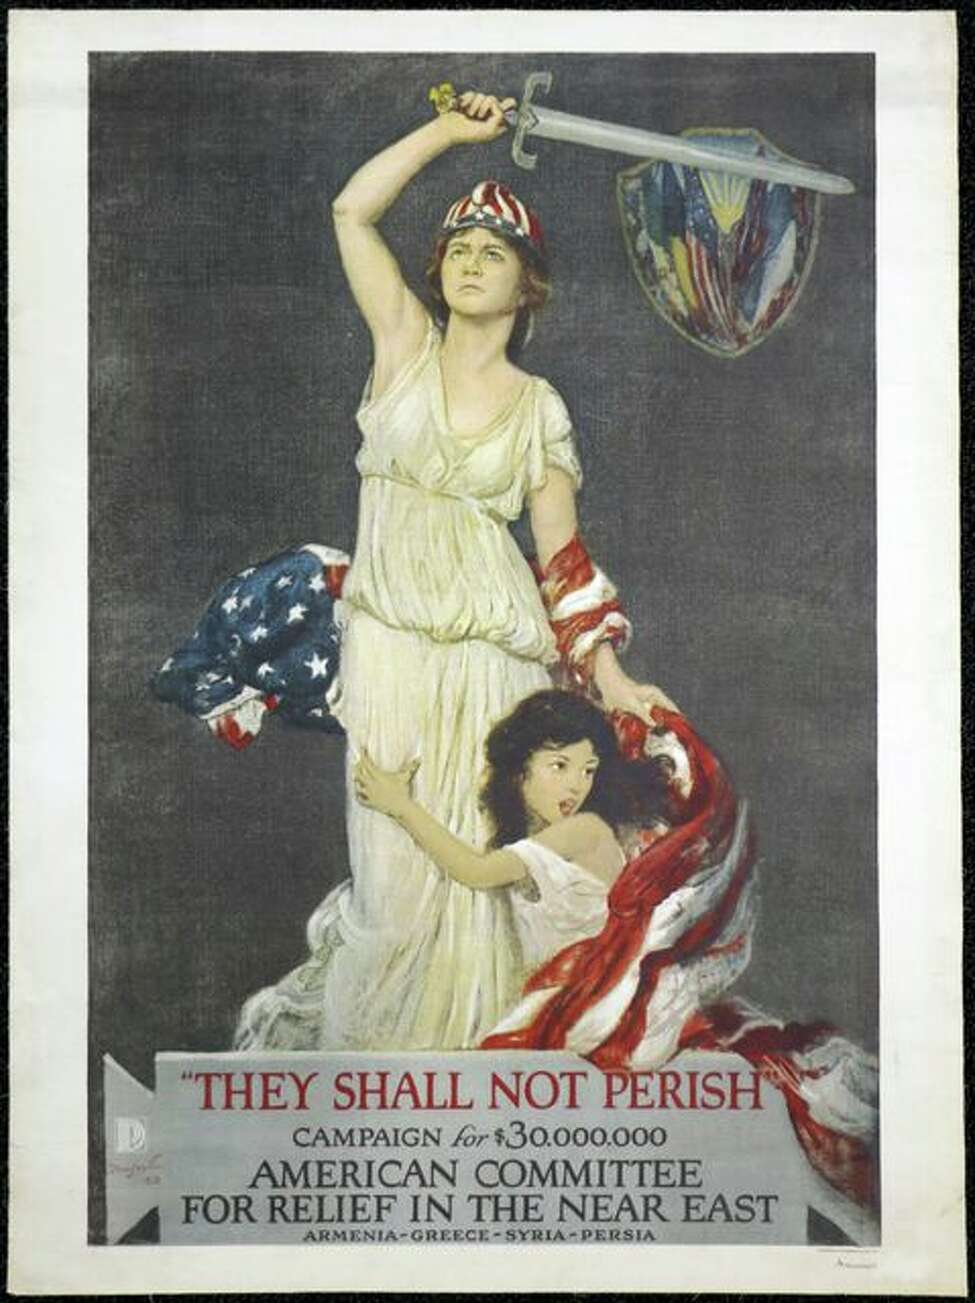 Poster designed by Douglas Vold from 1918 issued by the America Committee for Relief in the Near East.